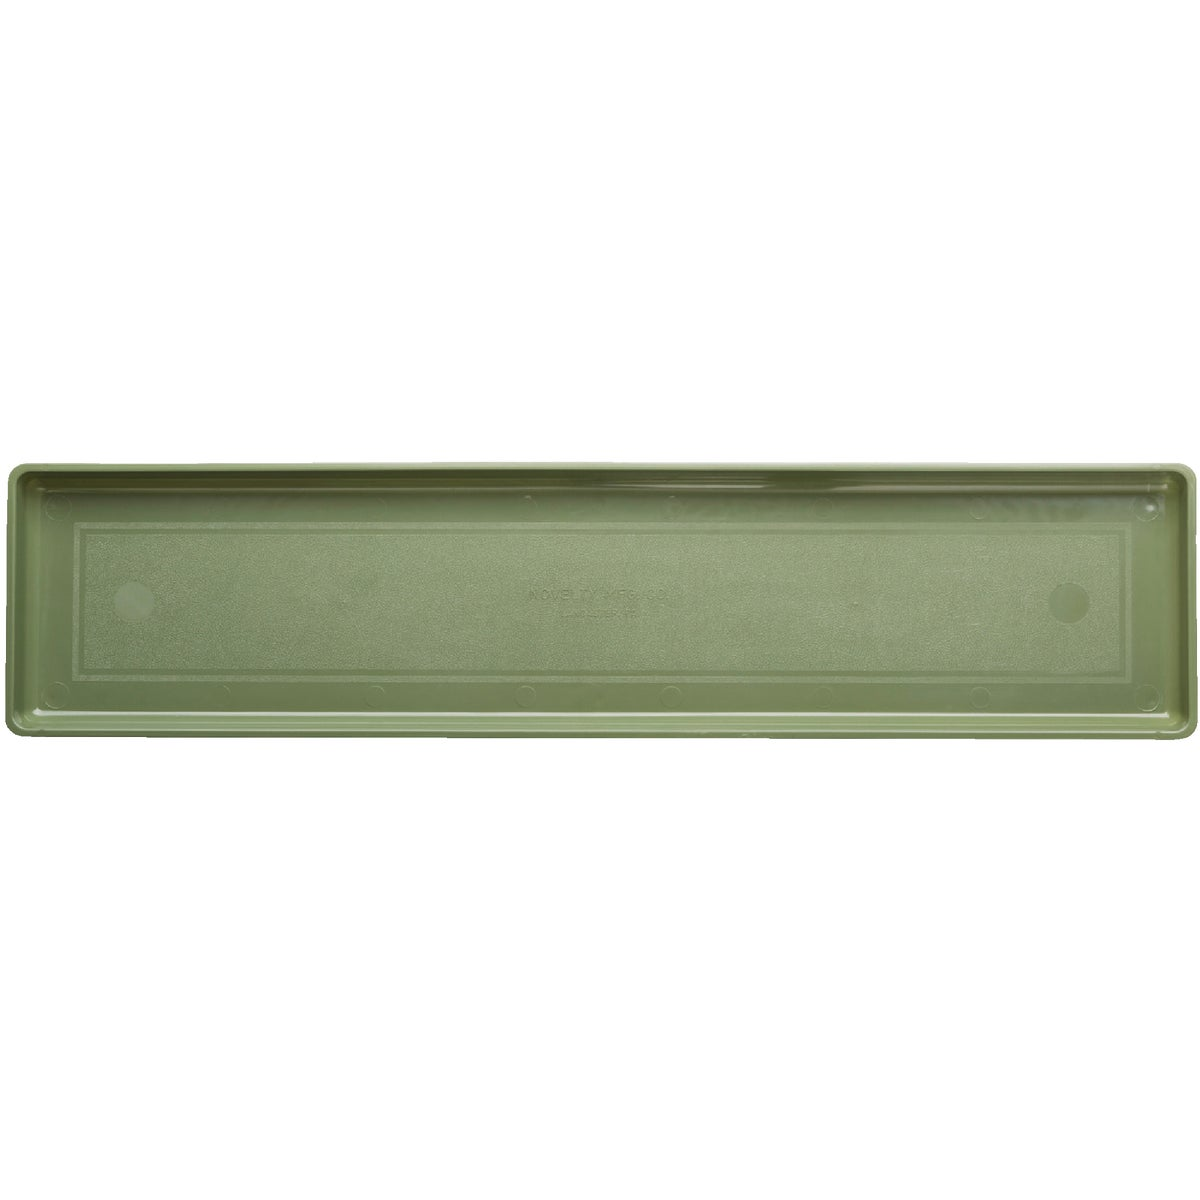 "30"" FLOWERBOX TRAY SAGE - 10300 by Novelty Mfg Co"